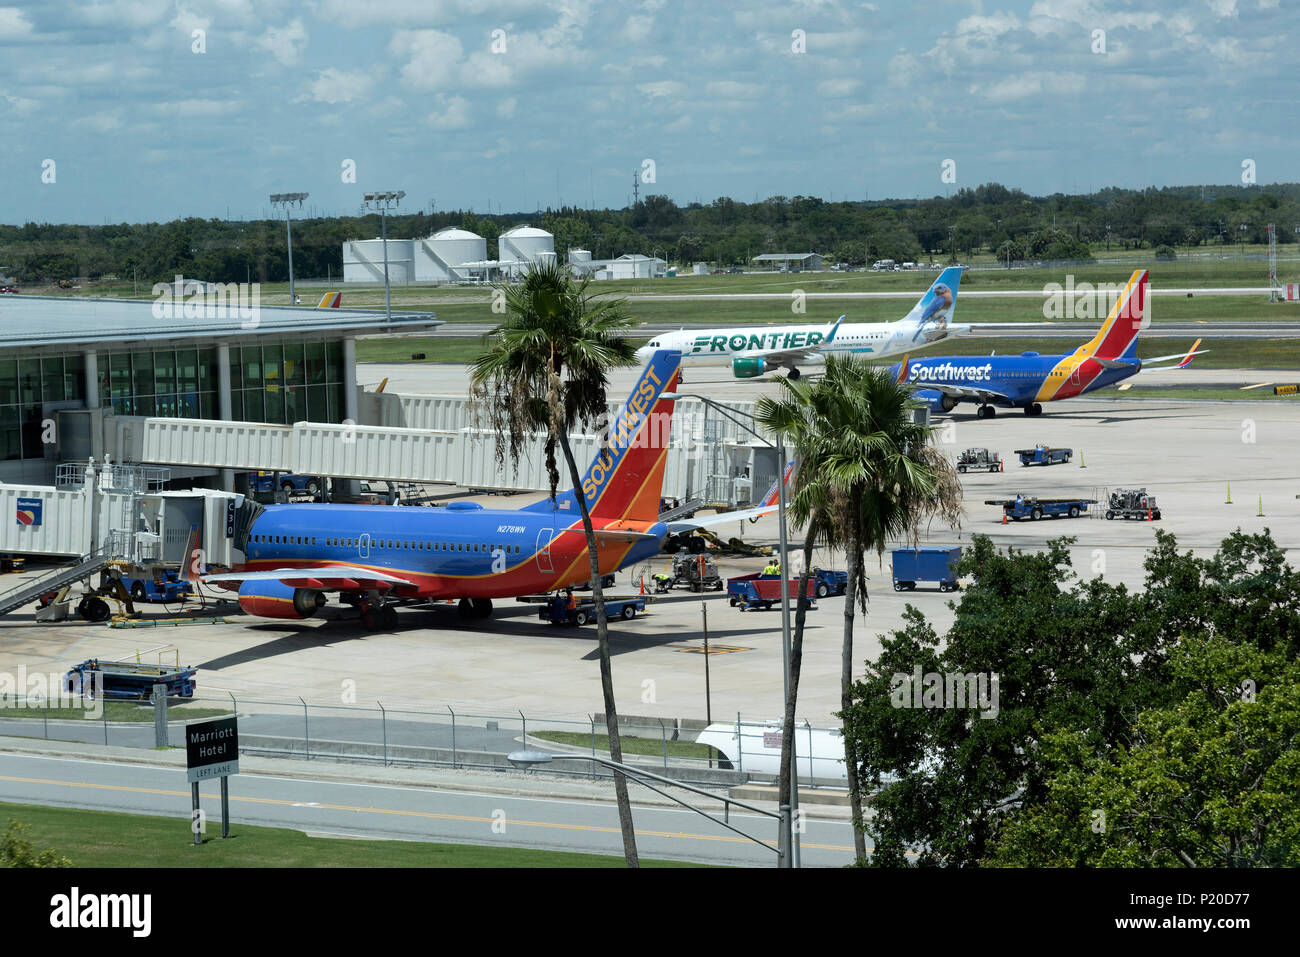 Tampa International Airport, Florida, USA. 2018. Overview of the Southwest Airline terminal and aircraft. - Stock Image